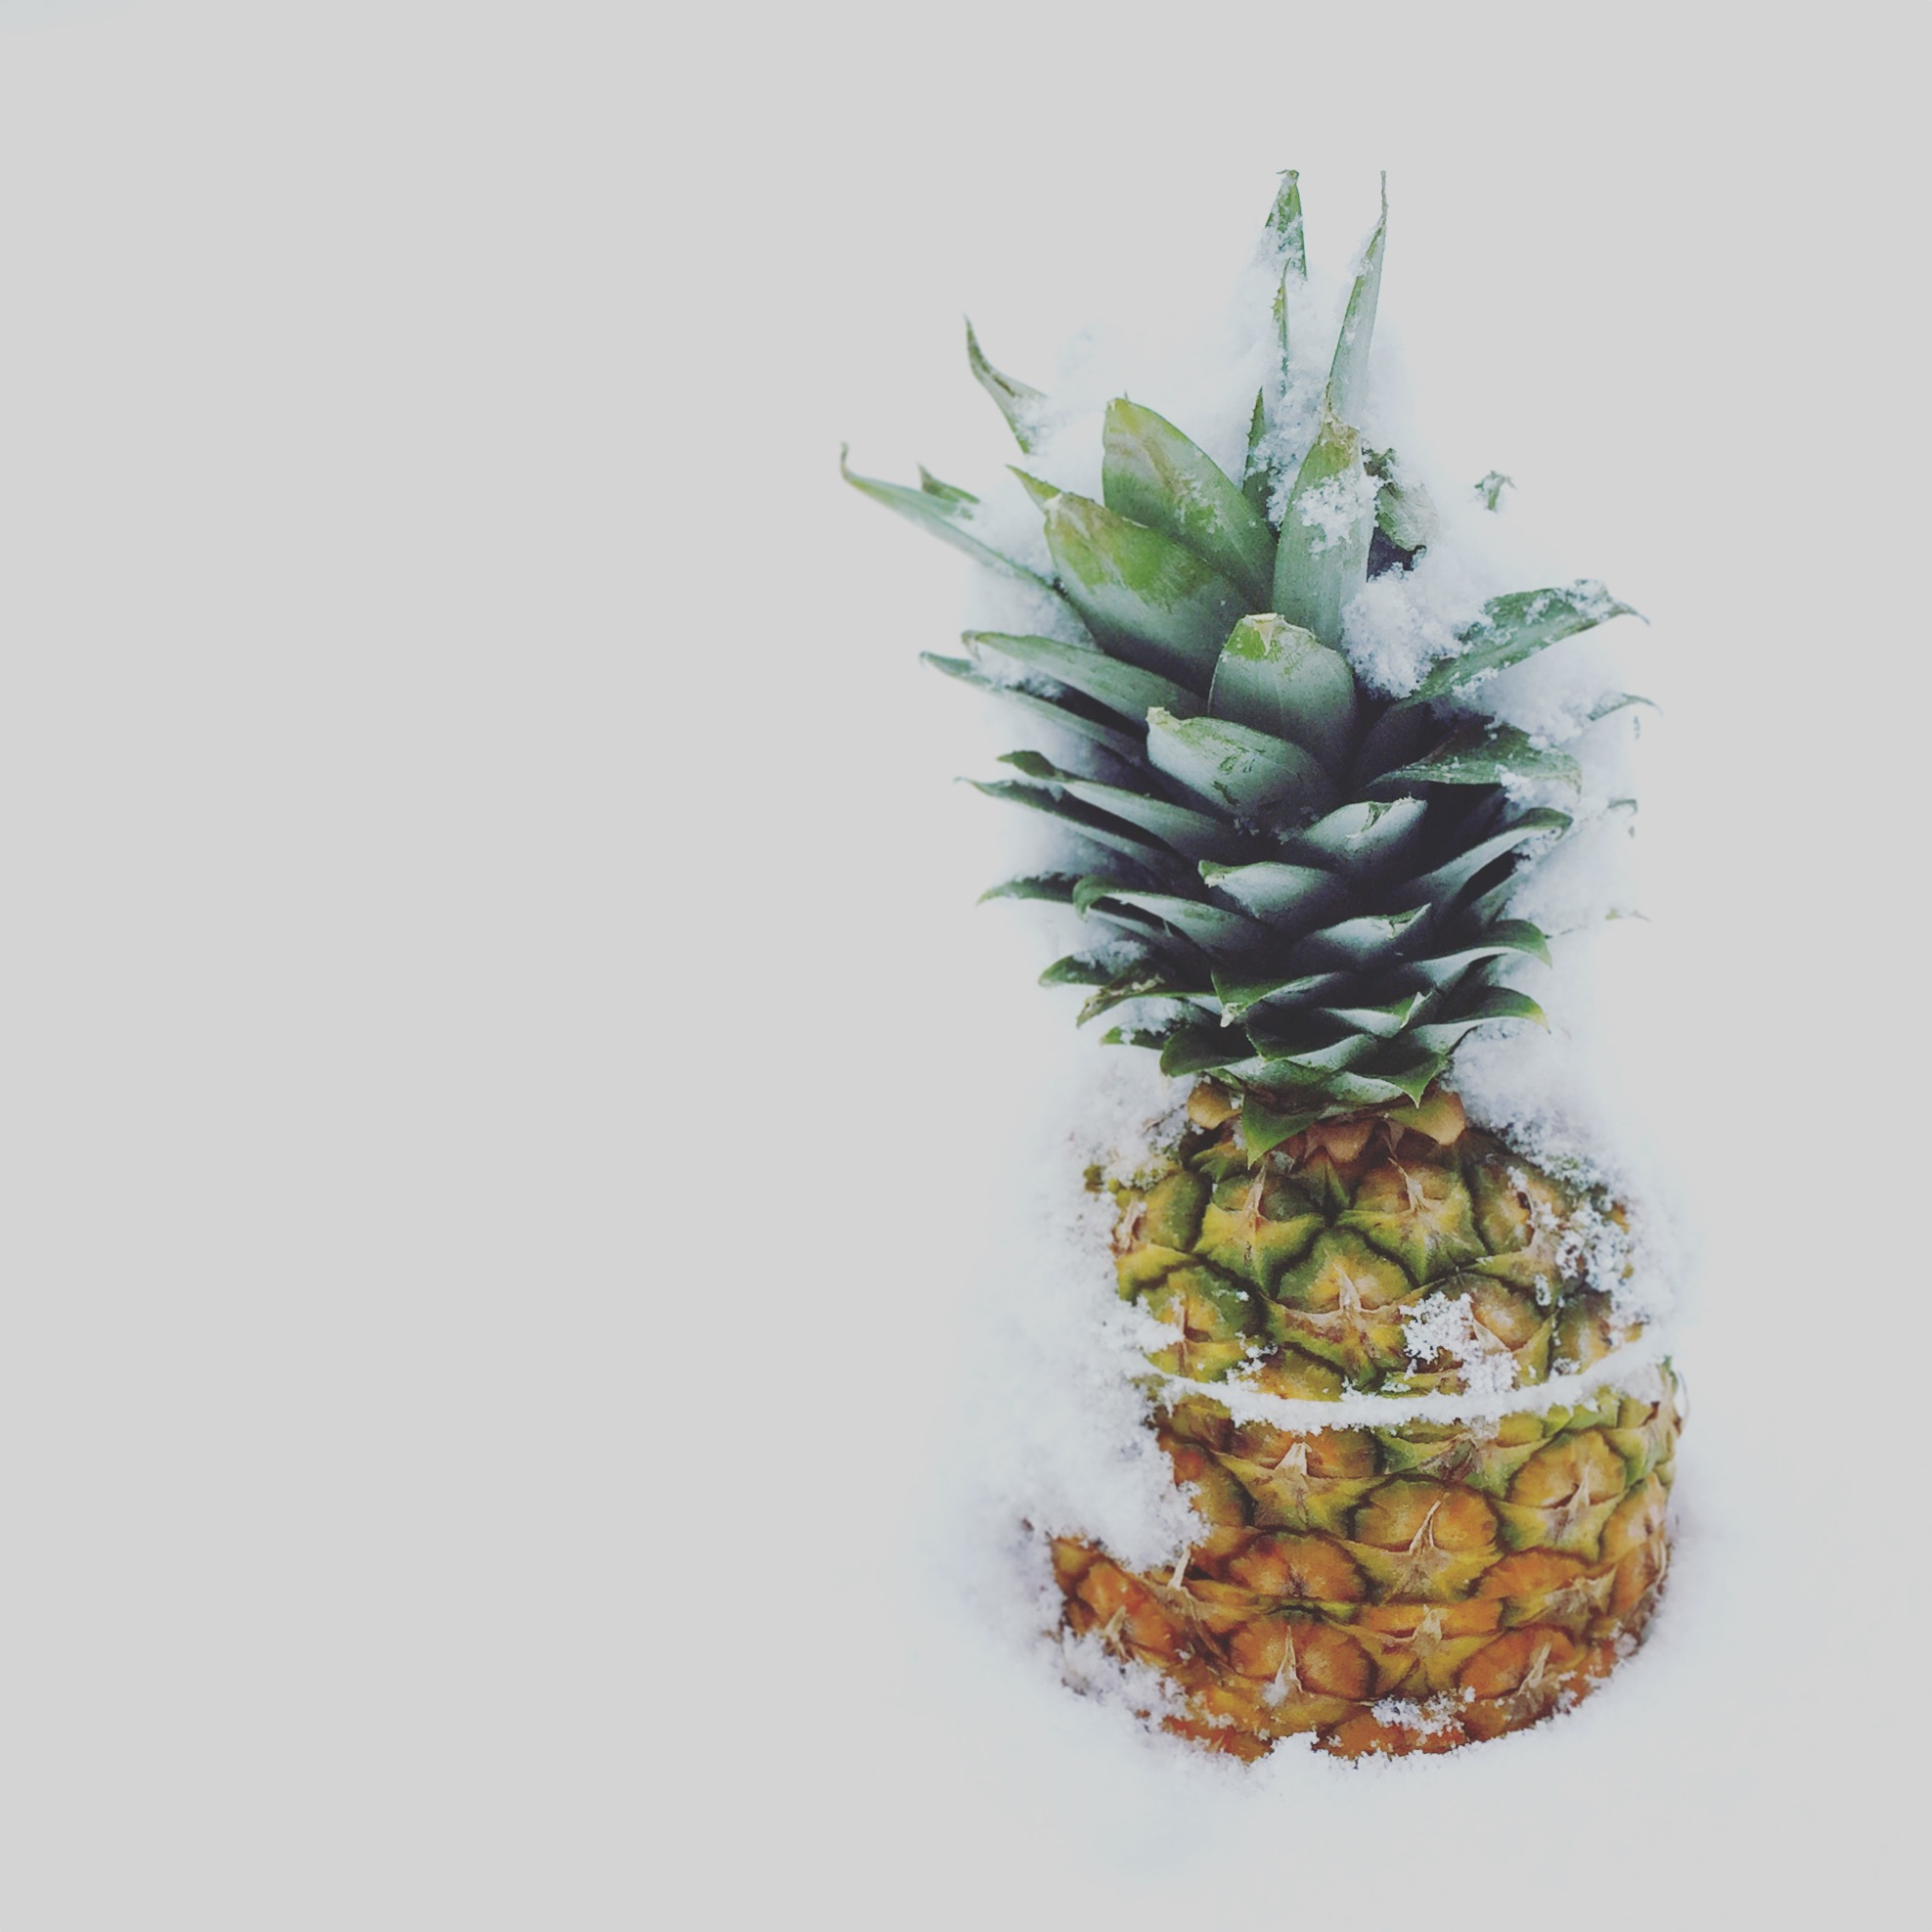 Pineapple in the snow | www.floatingkitchen.net